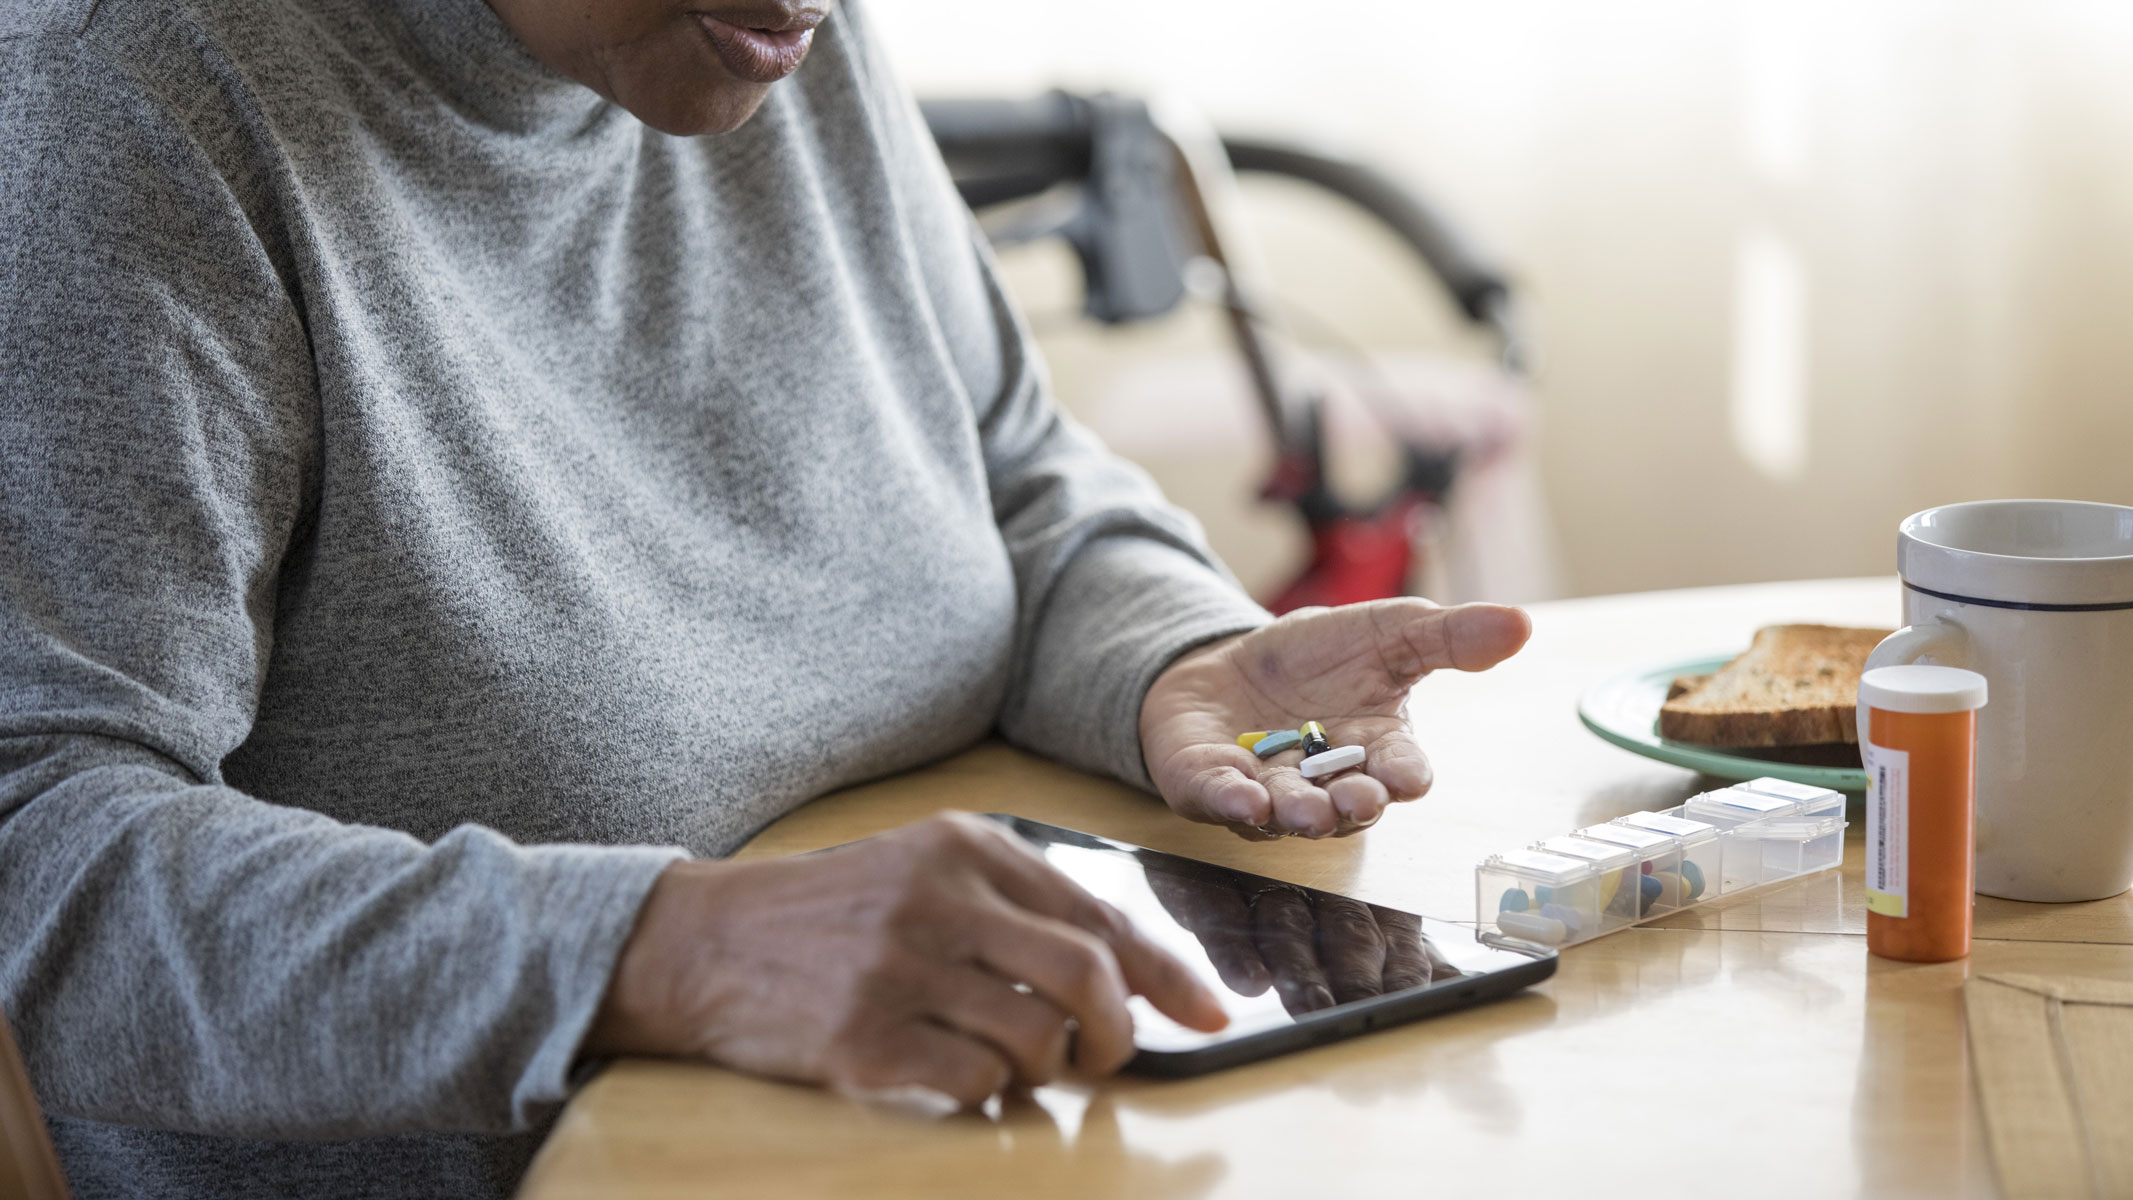 Woman looks up information on her tablet at the kitchen table while holding medication in the other hand.